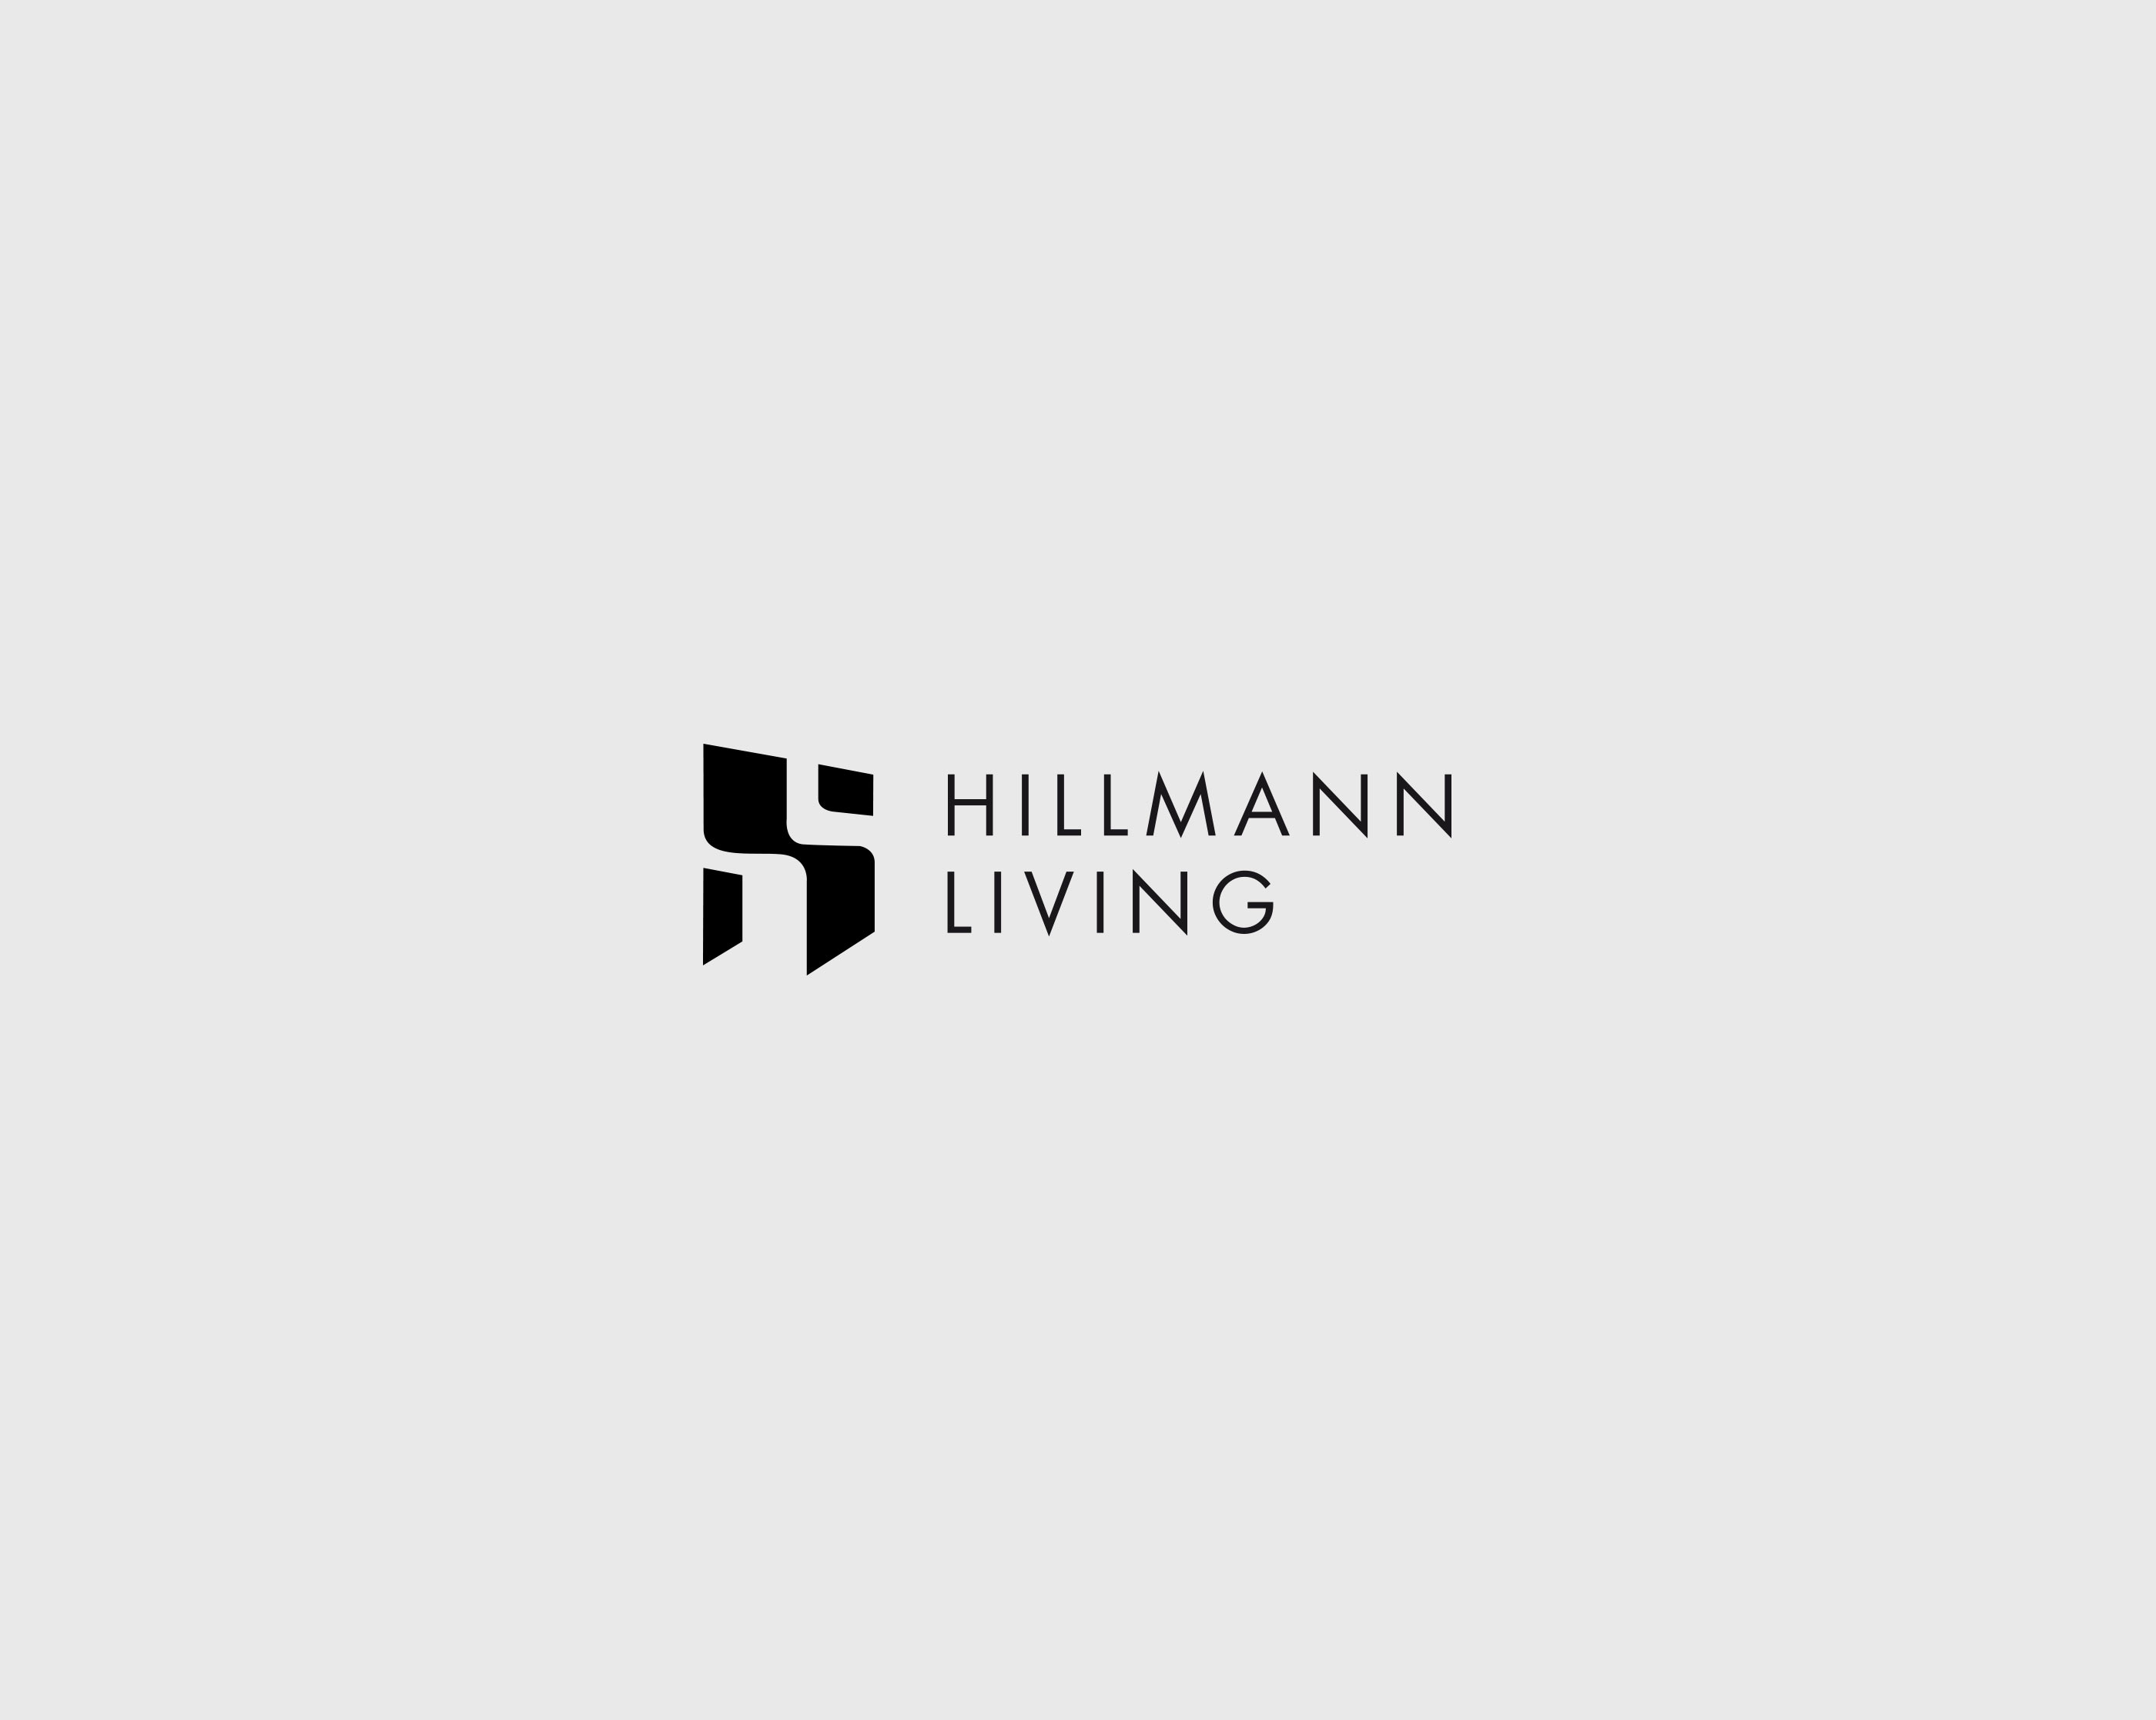 Hillmann Living Corporate Design